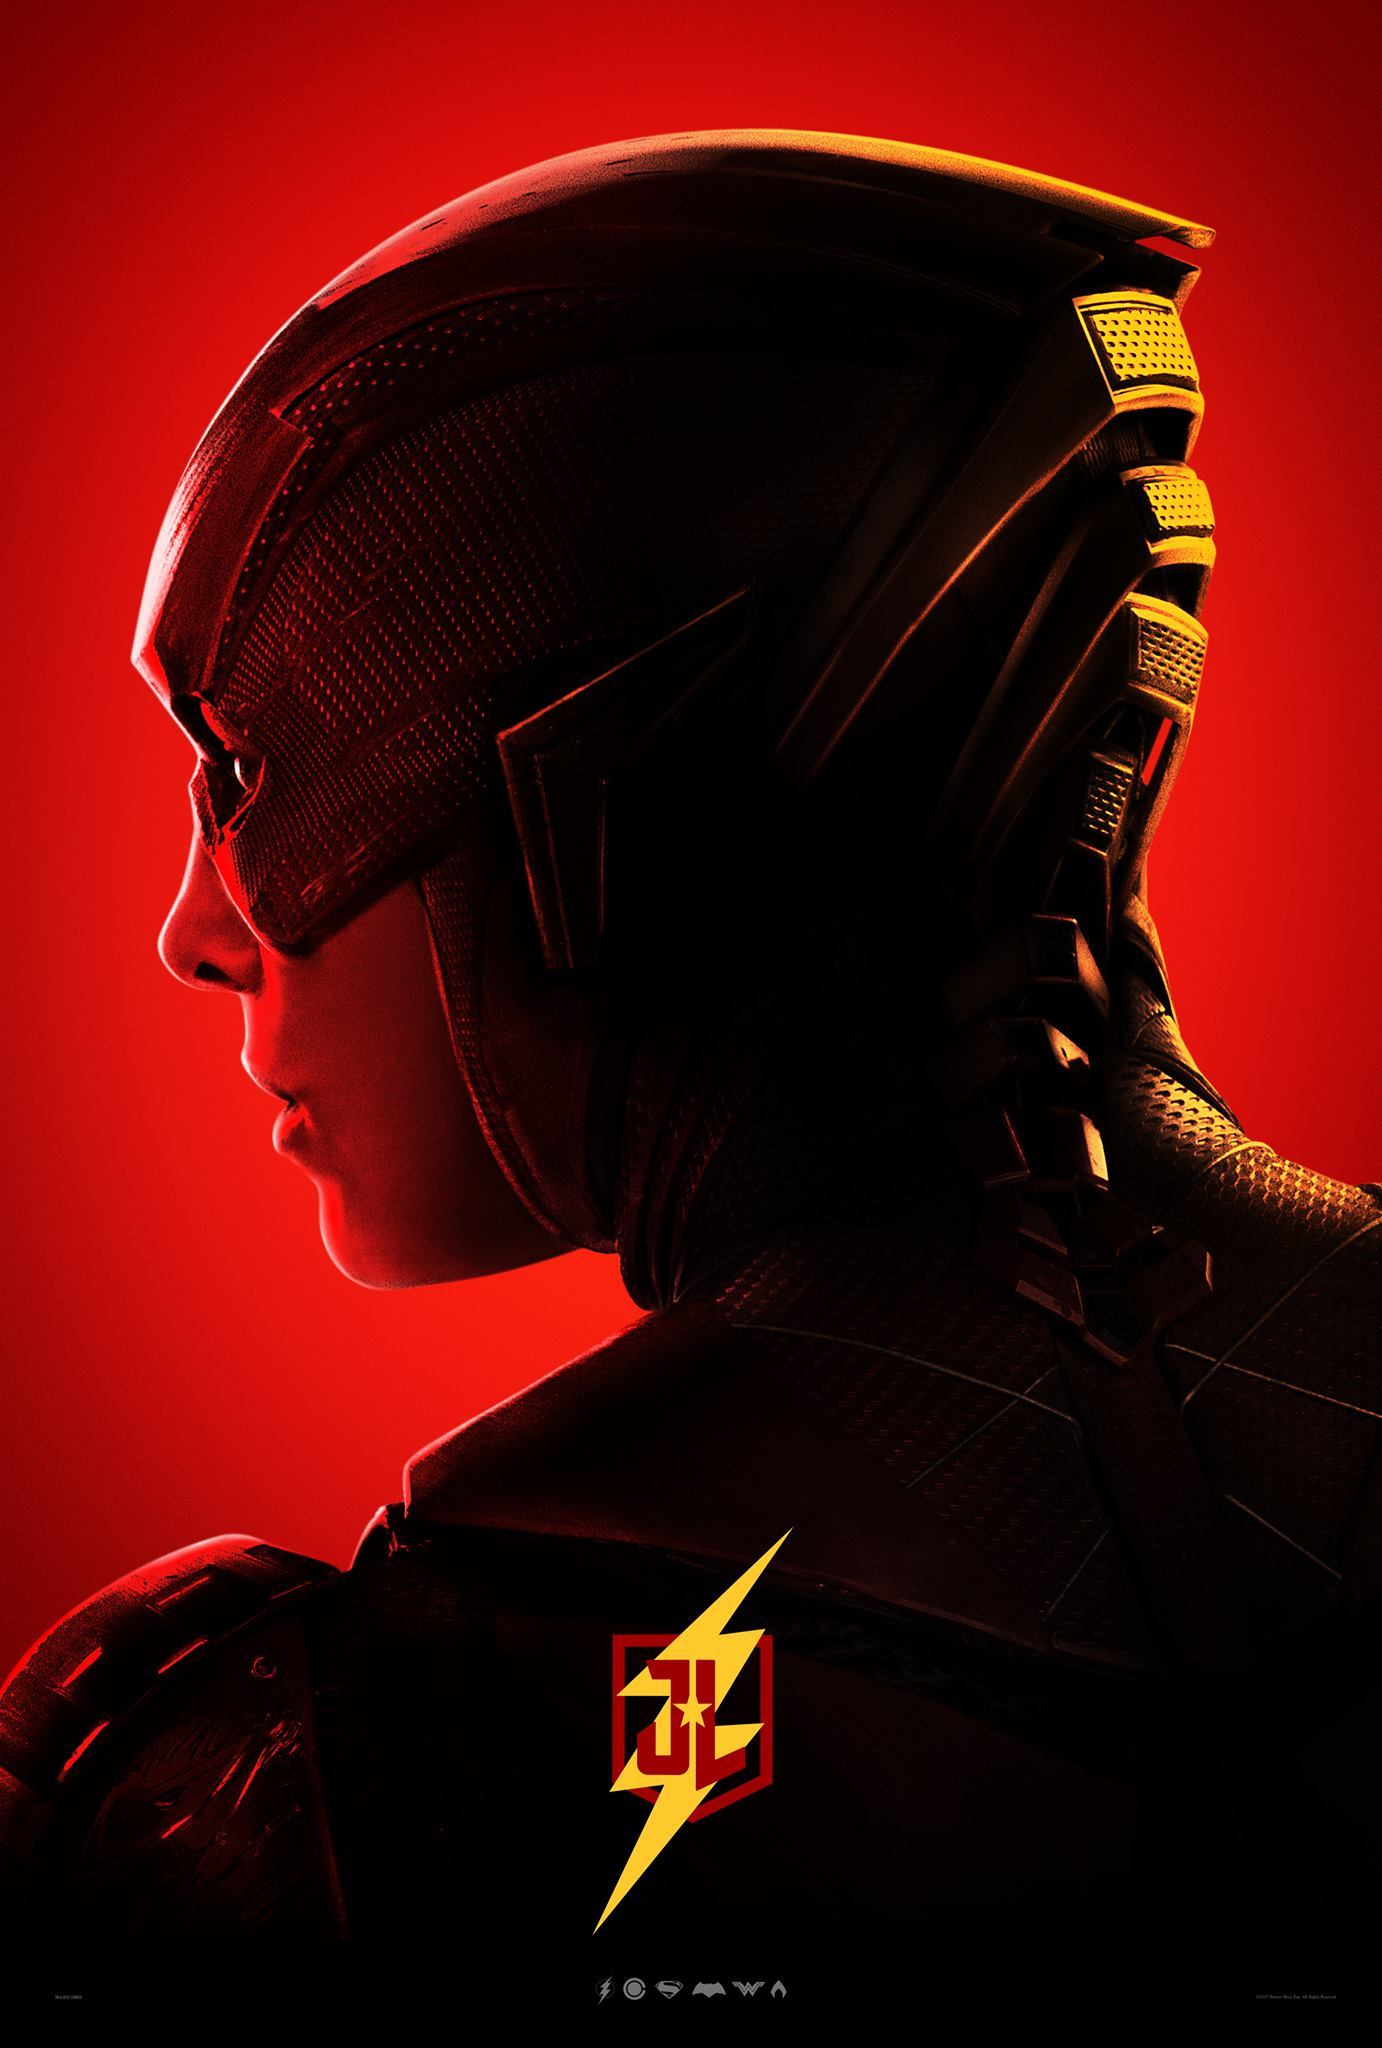 Justice League poster for The Flash